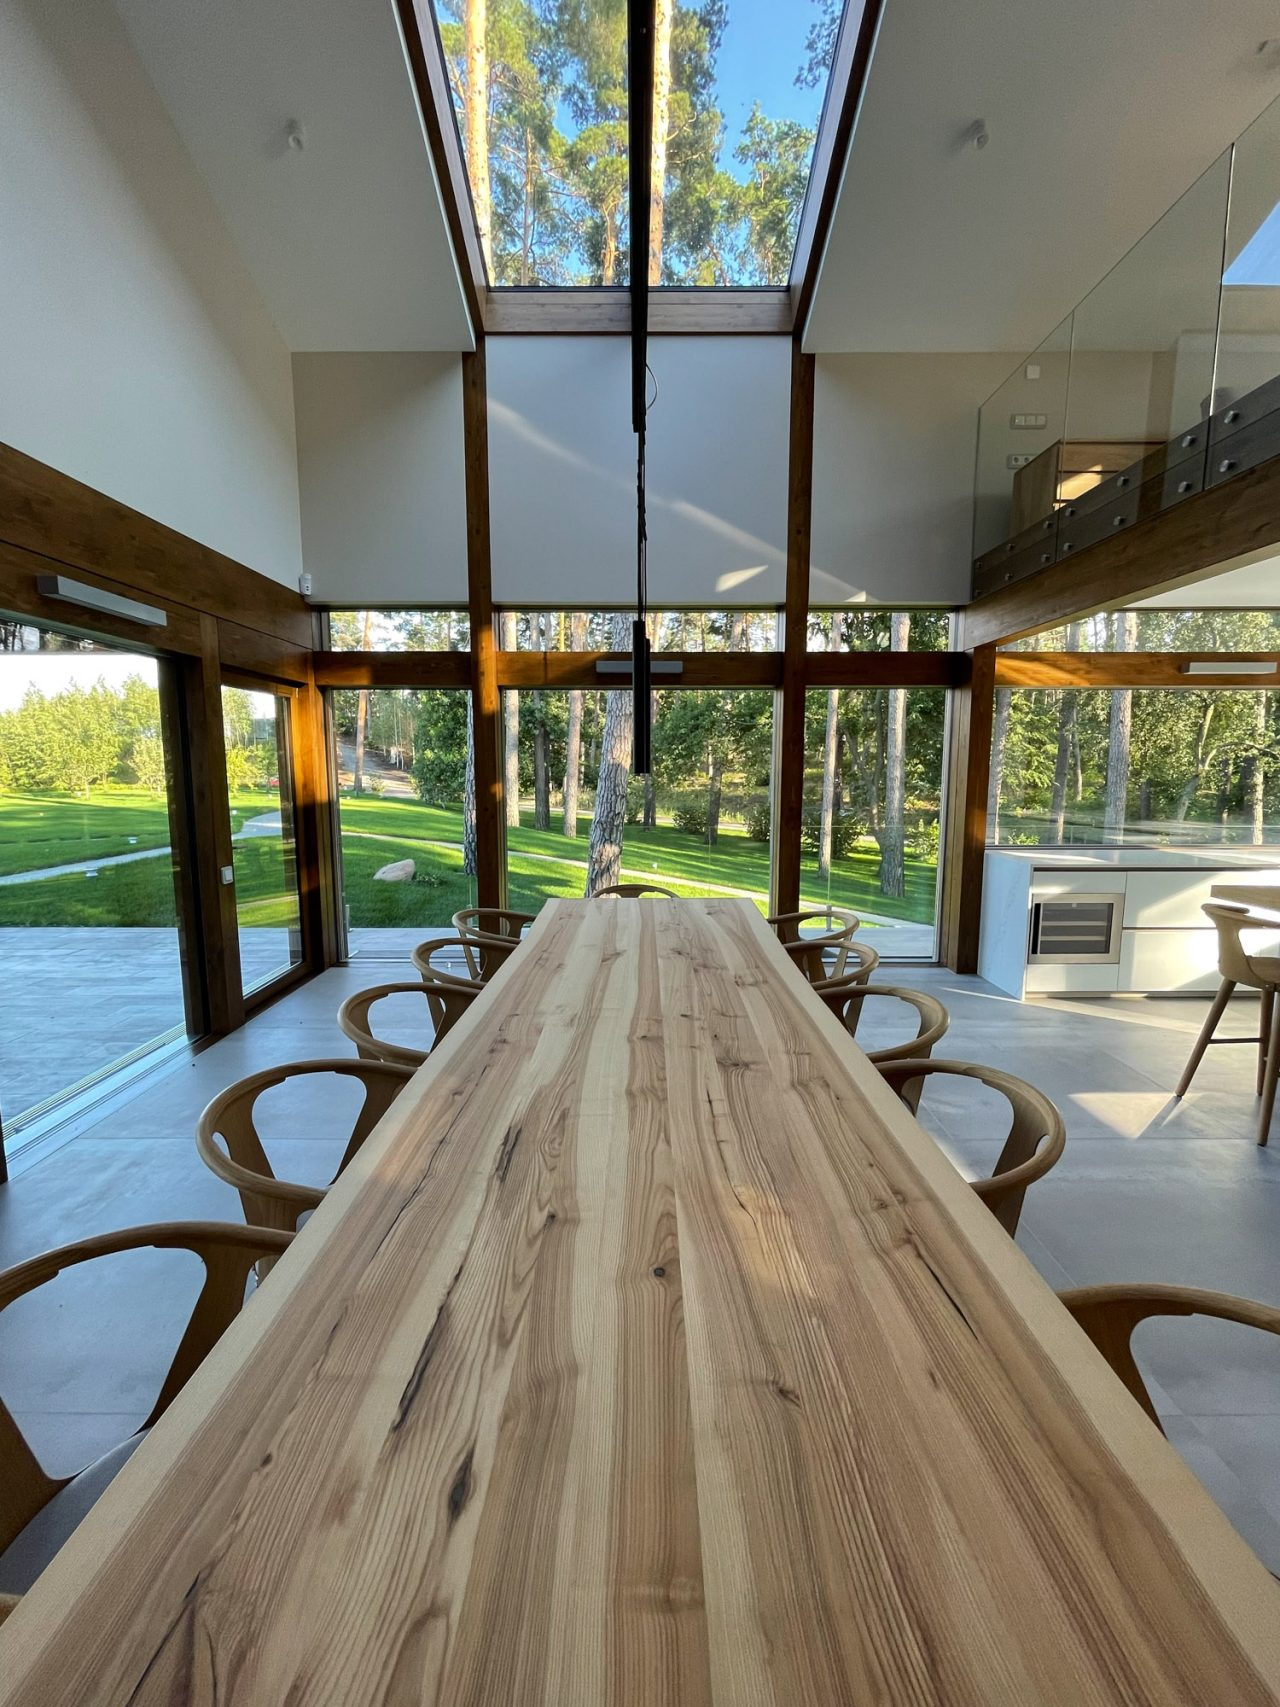 Hlass_house_KAGER - Hurii_03